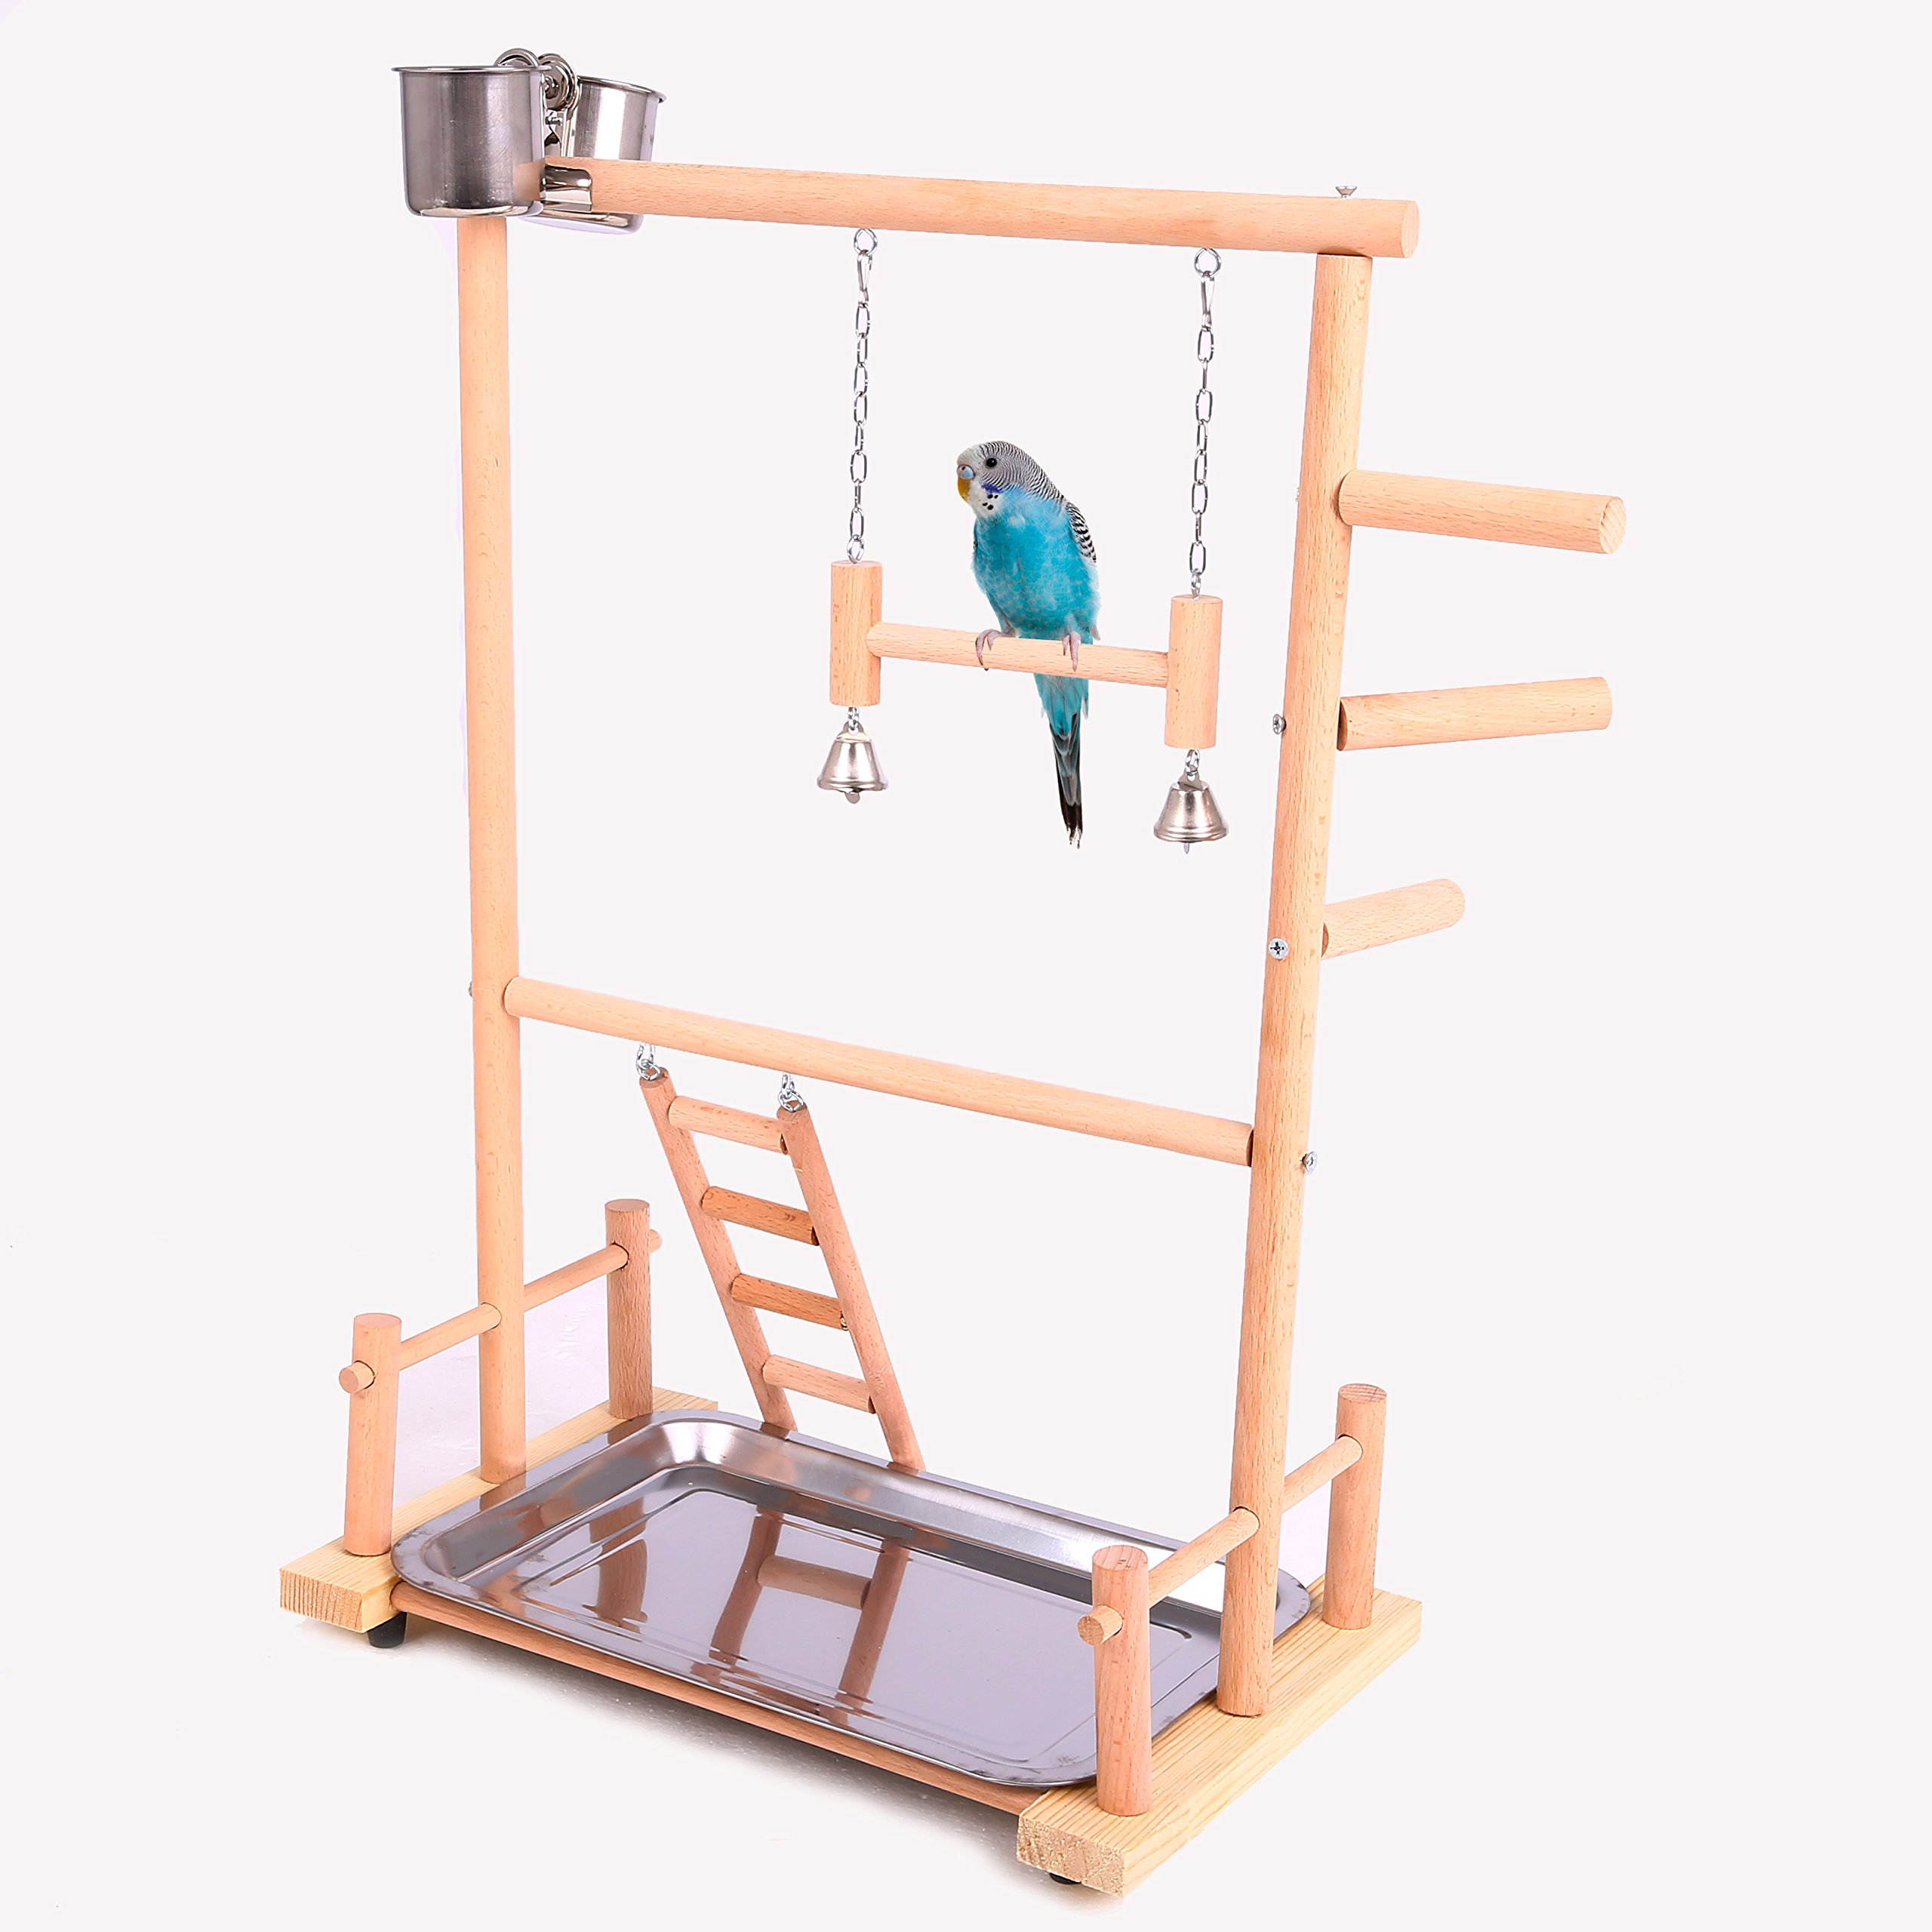 PARROT MEDIUM HANGING PLAY GYM with Tray Toy Cups